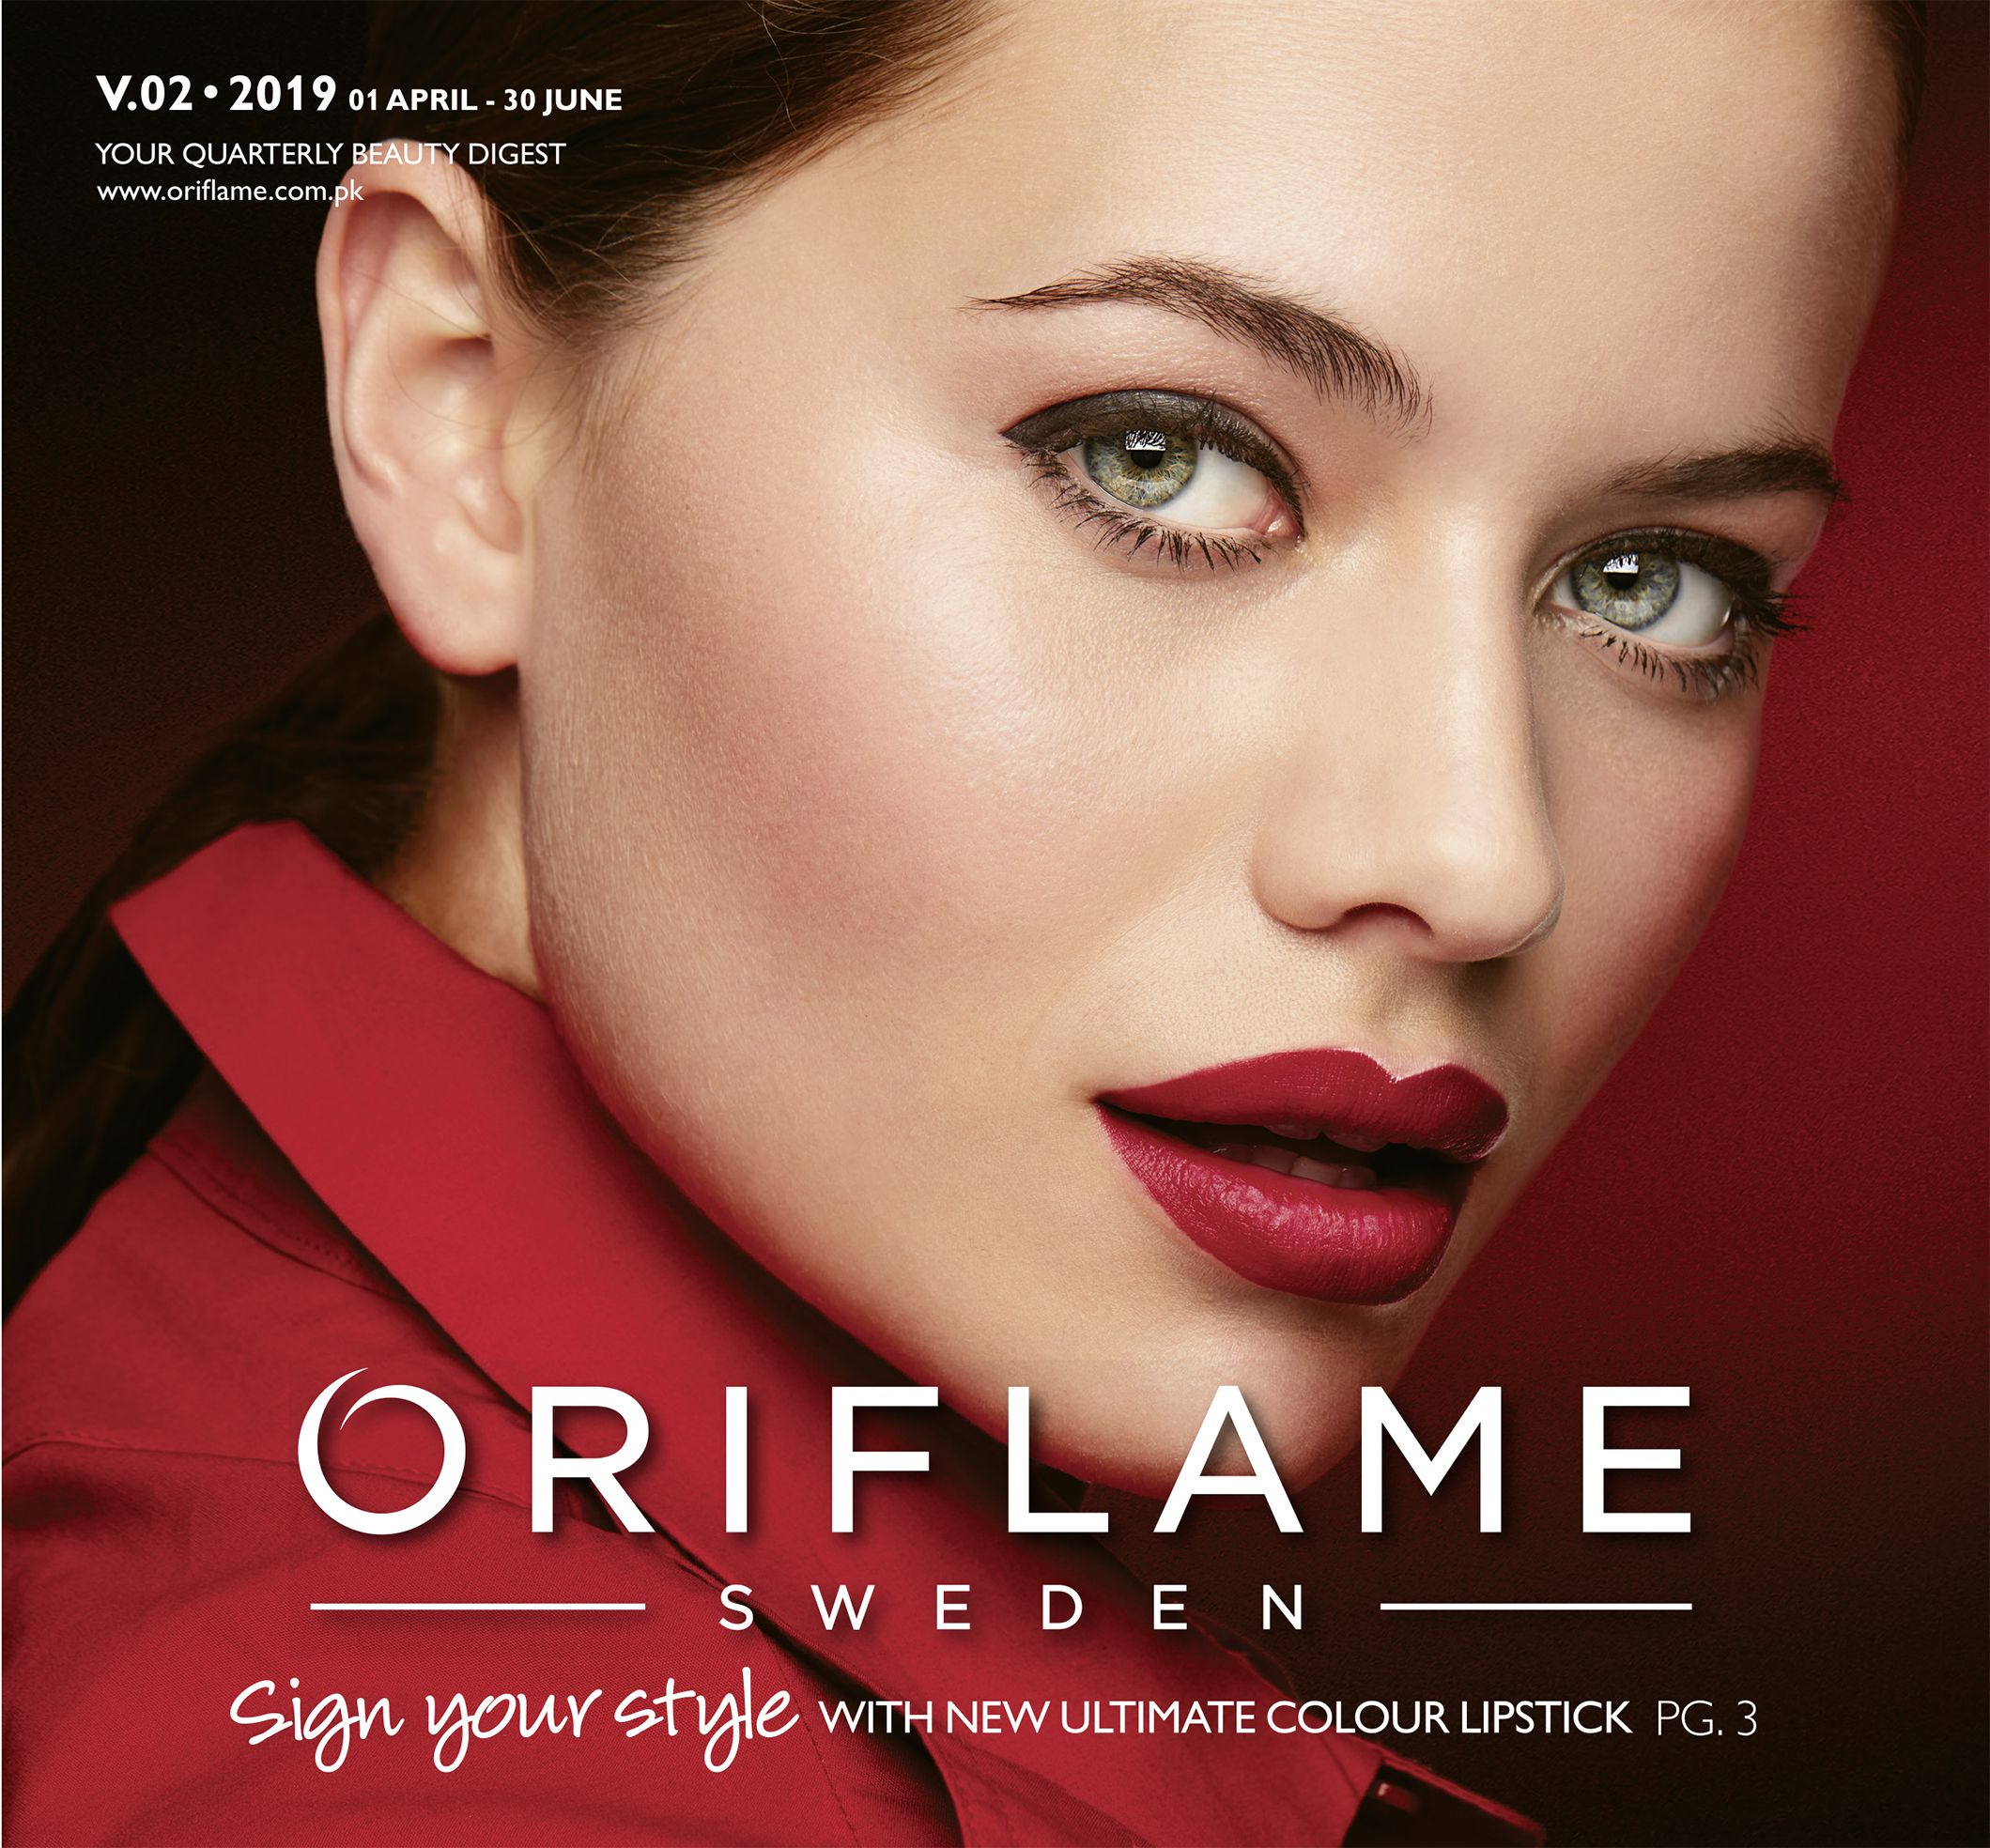 Oriflame Catalogue Oriflame Cosmetics Beauty Quotes Inspirational Beauty Video Ideas Makeup Poster